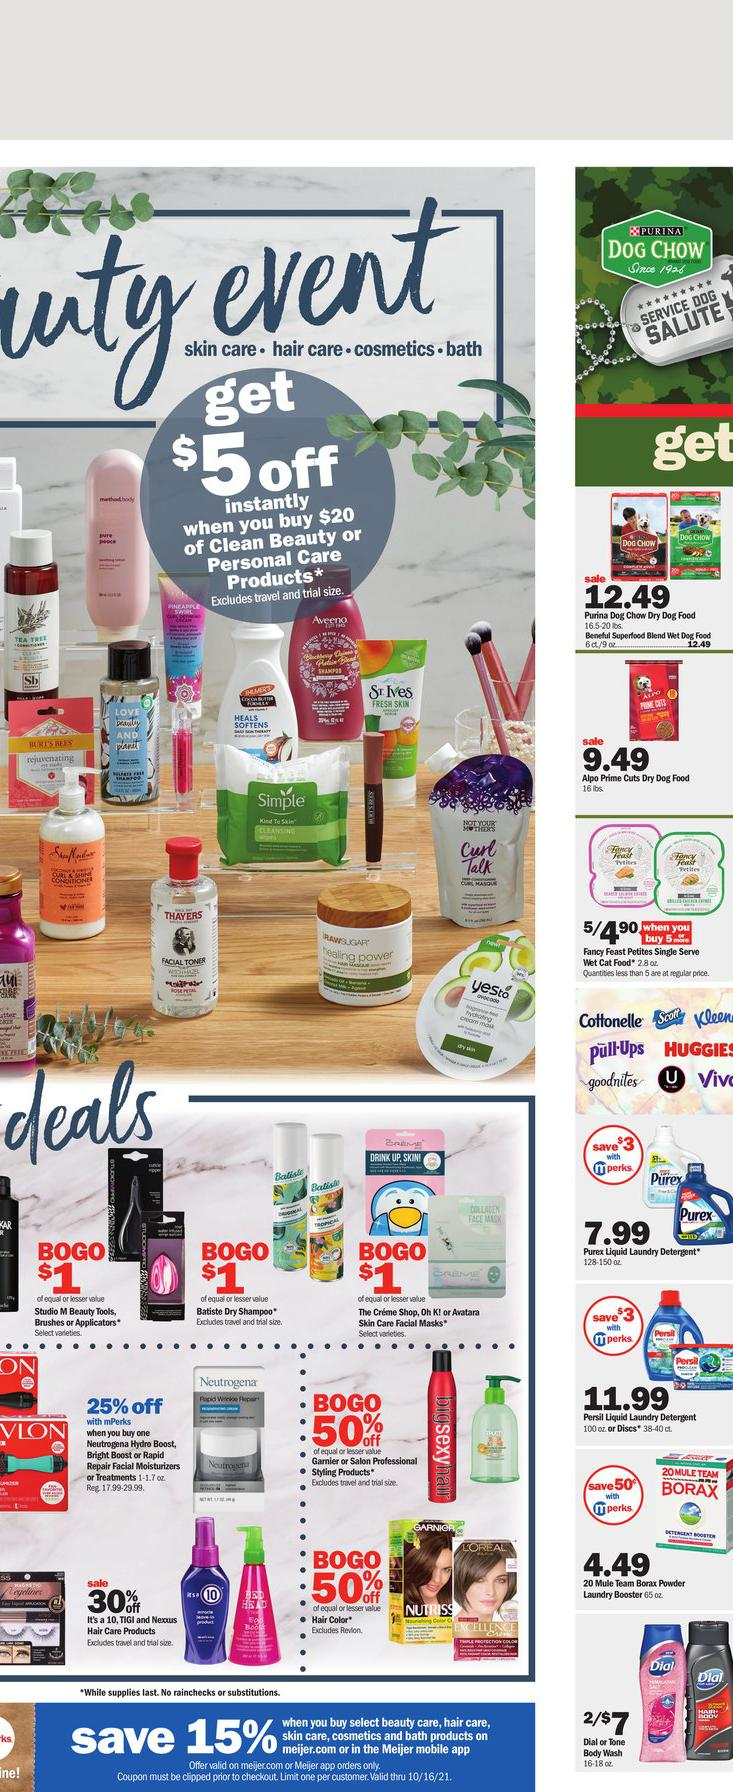 10.10.2021 Meijer ad 16. page